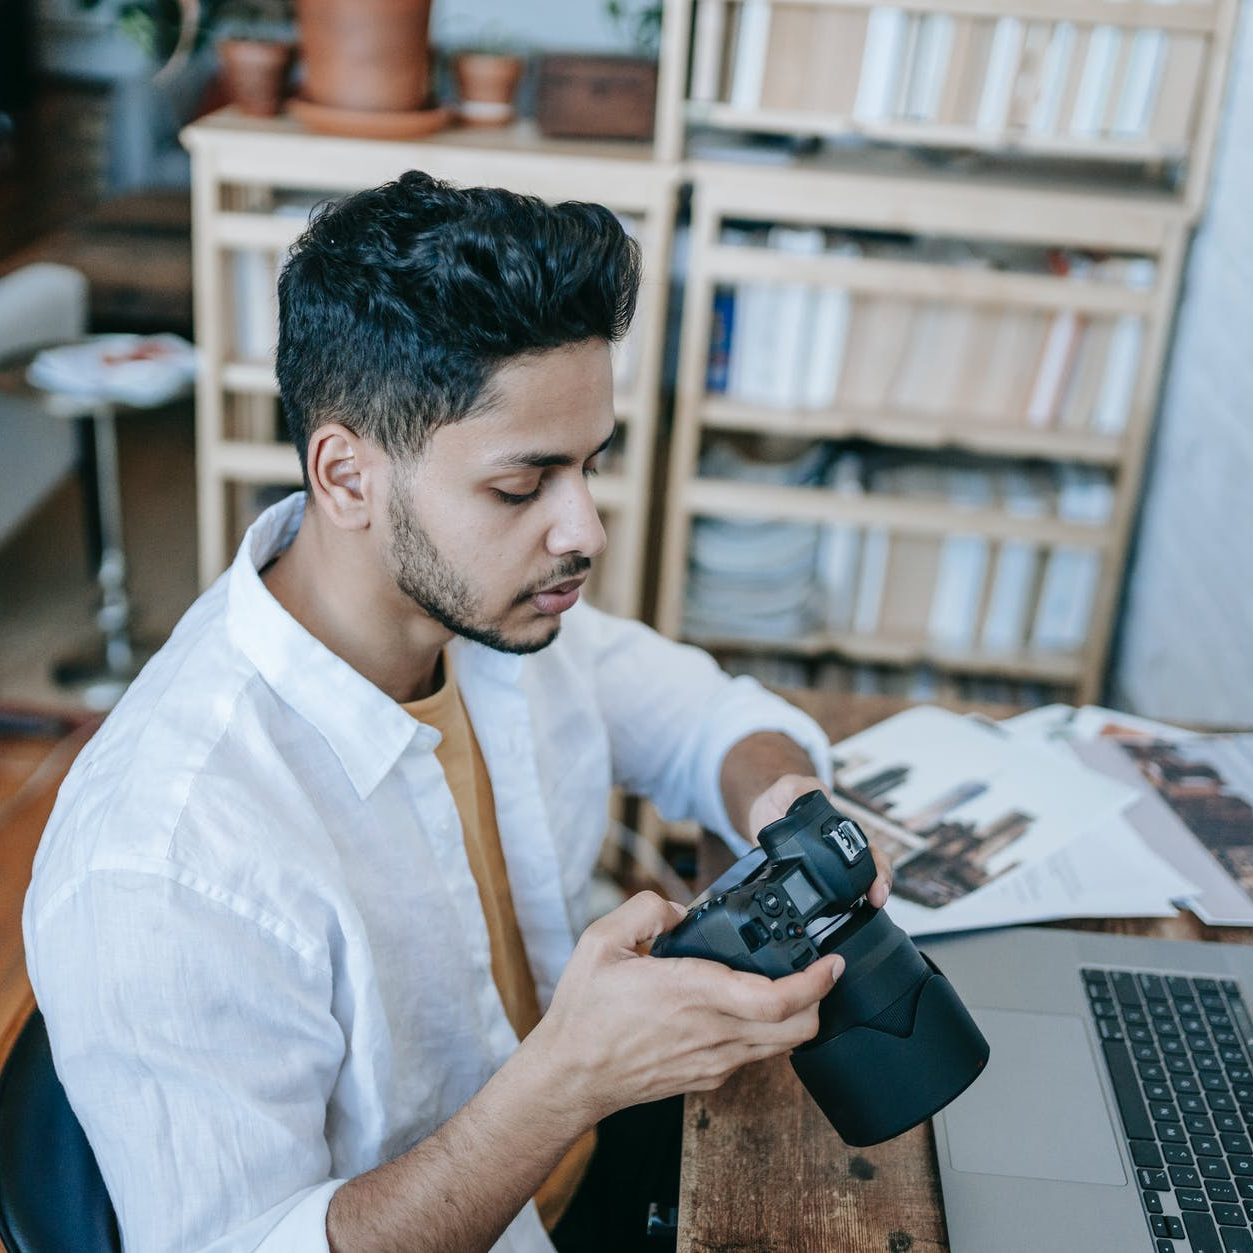 pensive ethnic man photographer sitting with photo camera at table at home